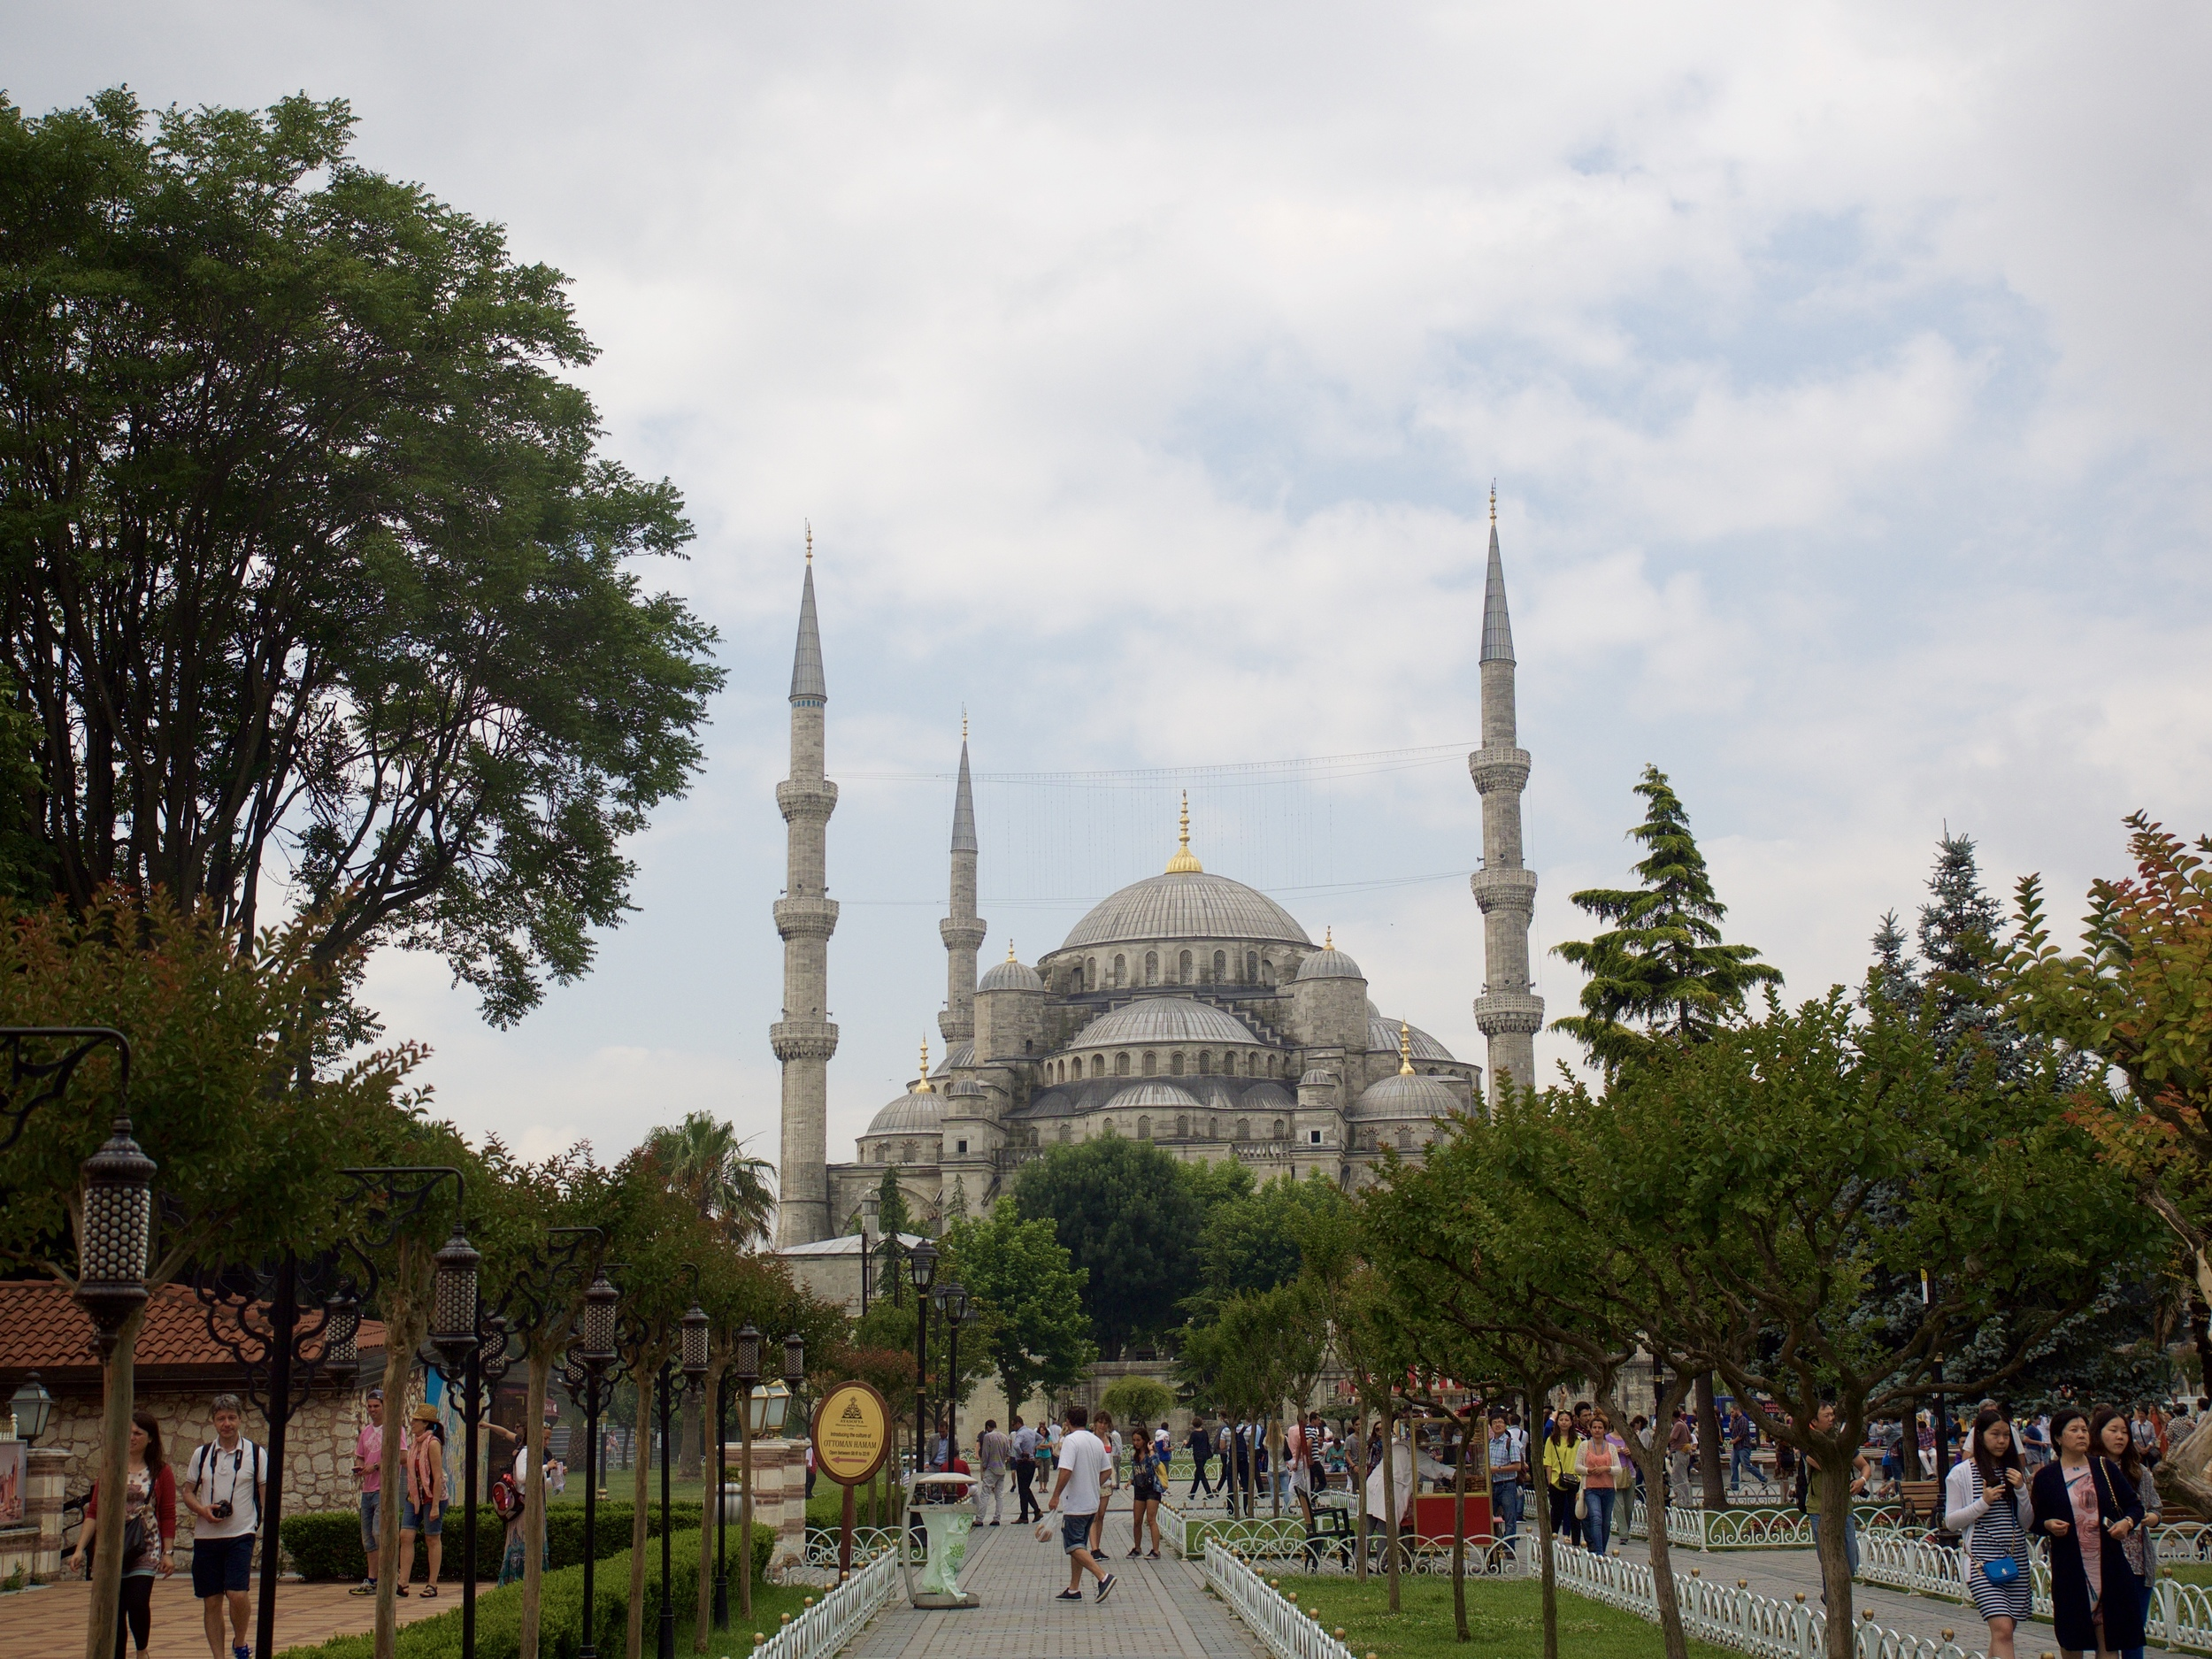 The beautiful Blue Mosque.